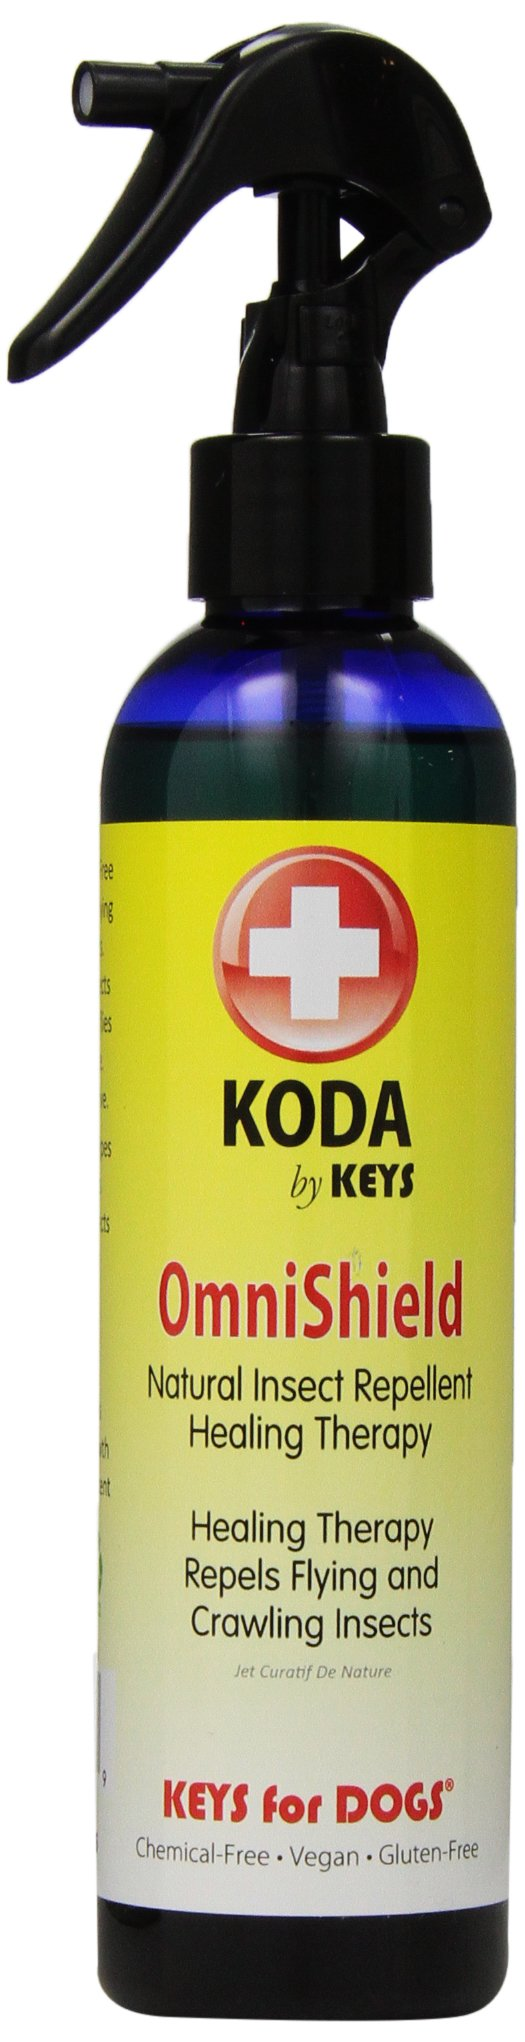 KODA Omni Shield Intense Spray Therapy and Natural Insect Repellent for Pets